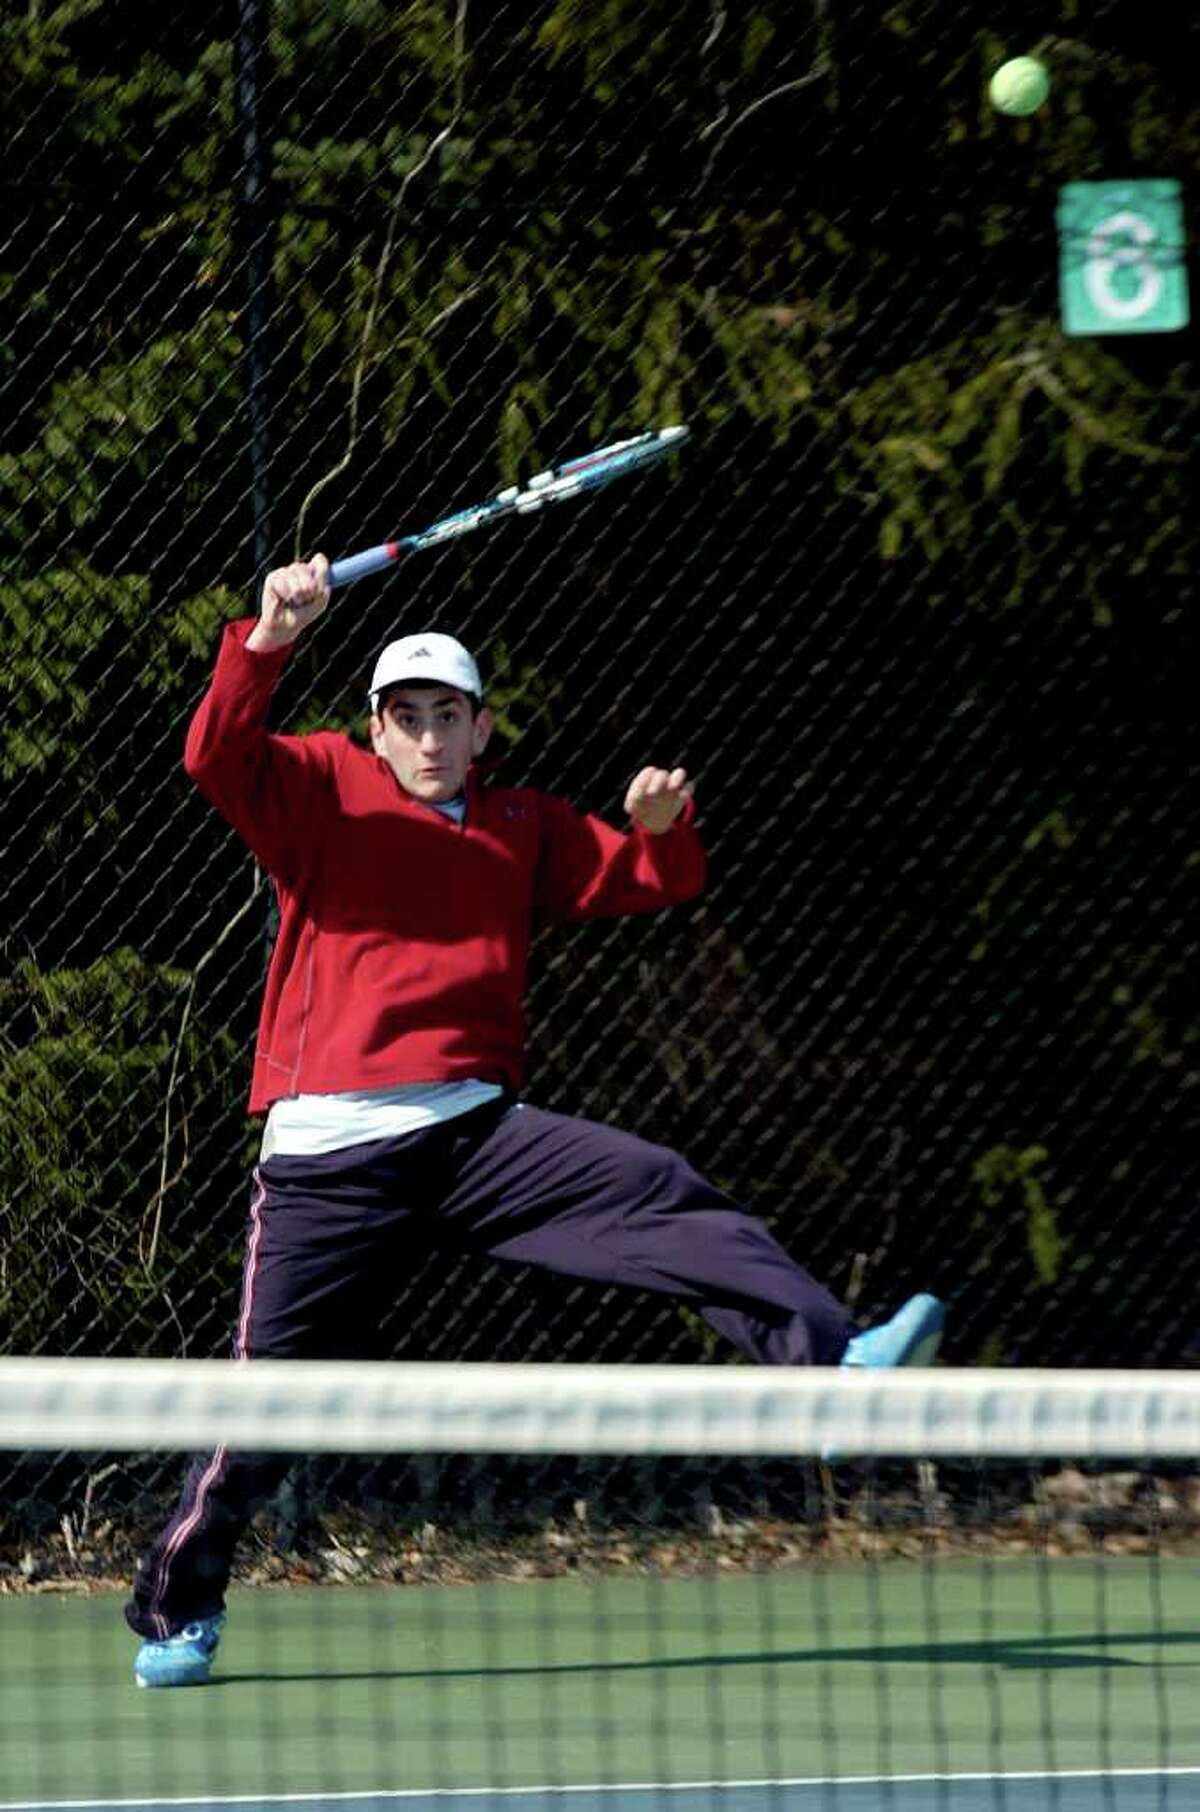 Justin Kleiner plays during tennis practice at Staples High School on Tuesday, March 29, 2011.